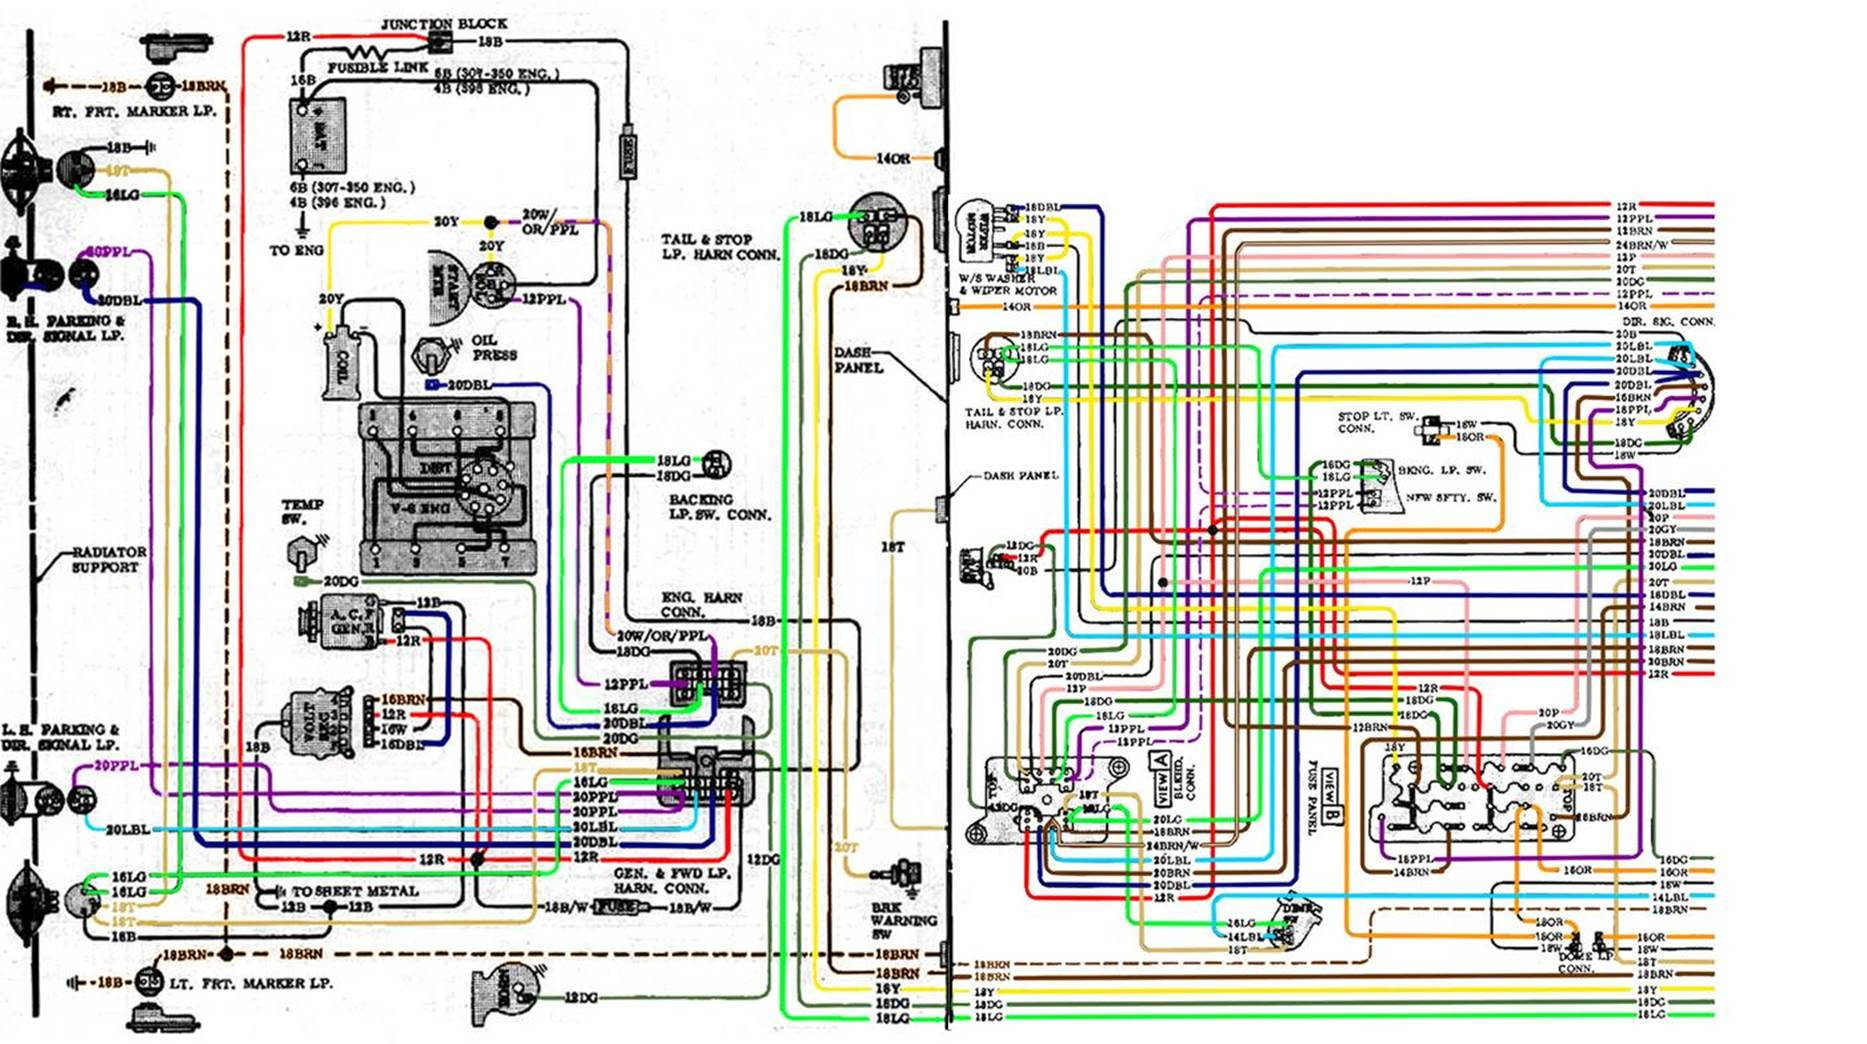 image002 gm wiring diagrams gm wiring diagrams online \u2022 wiring diagrams j gm ls3 crate engine wiring diagram at bayanpartner.co